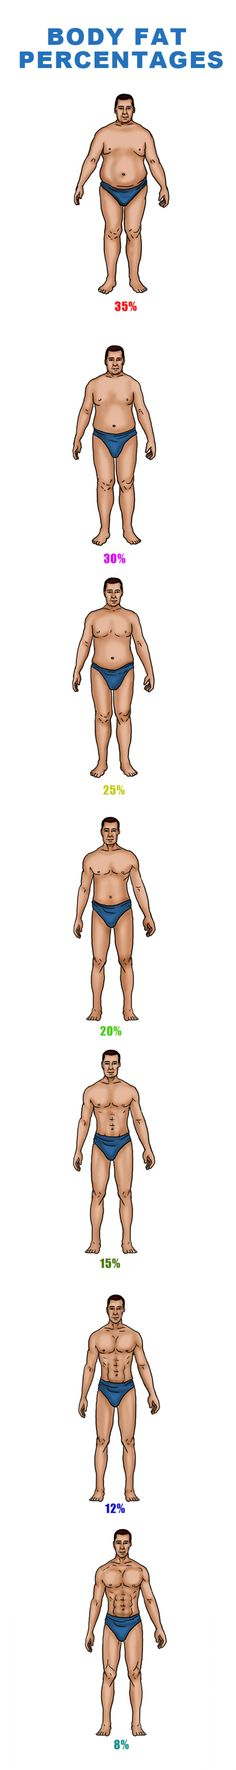 Body Fat Percentage Chart For Men. Ideal Weight Chart, Weight Charts, Body Fat Percentage Chart, Greek Gods, My Passion, Get In Shape, Bodybuilding, Gym, Vegan